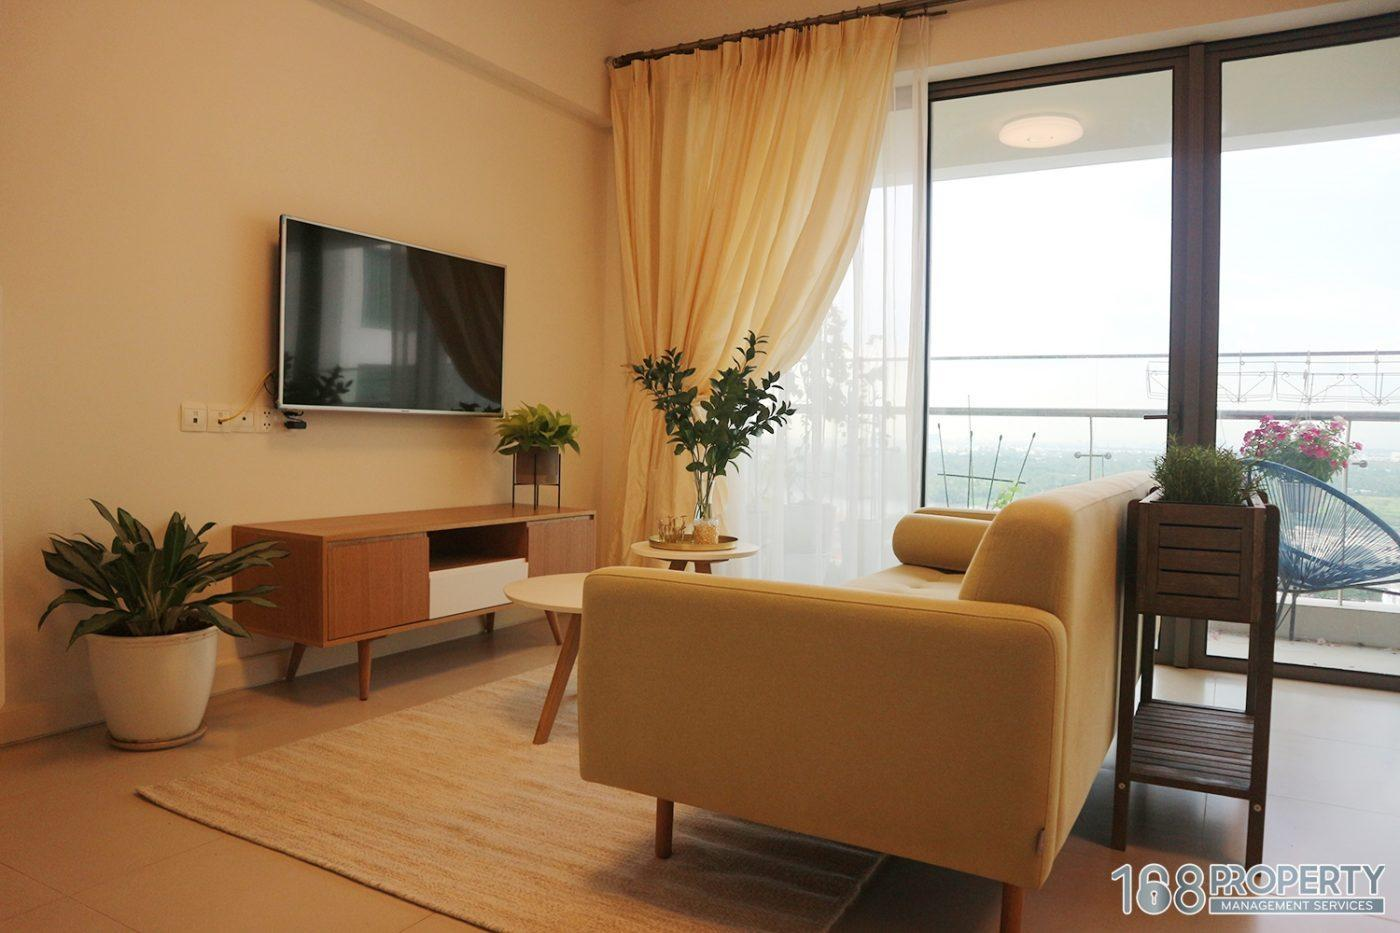 168PROPERTY 2BR APT AMAZING RIVER VIEW COZY STYLE